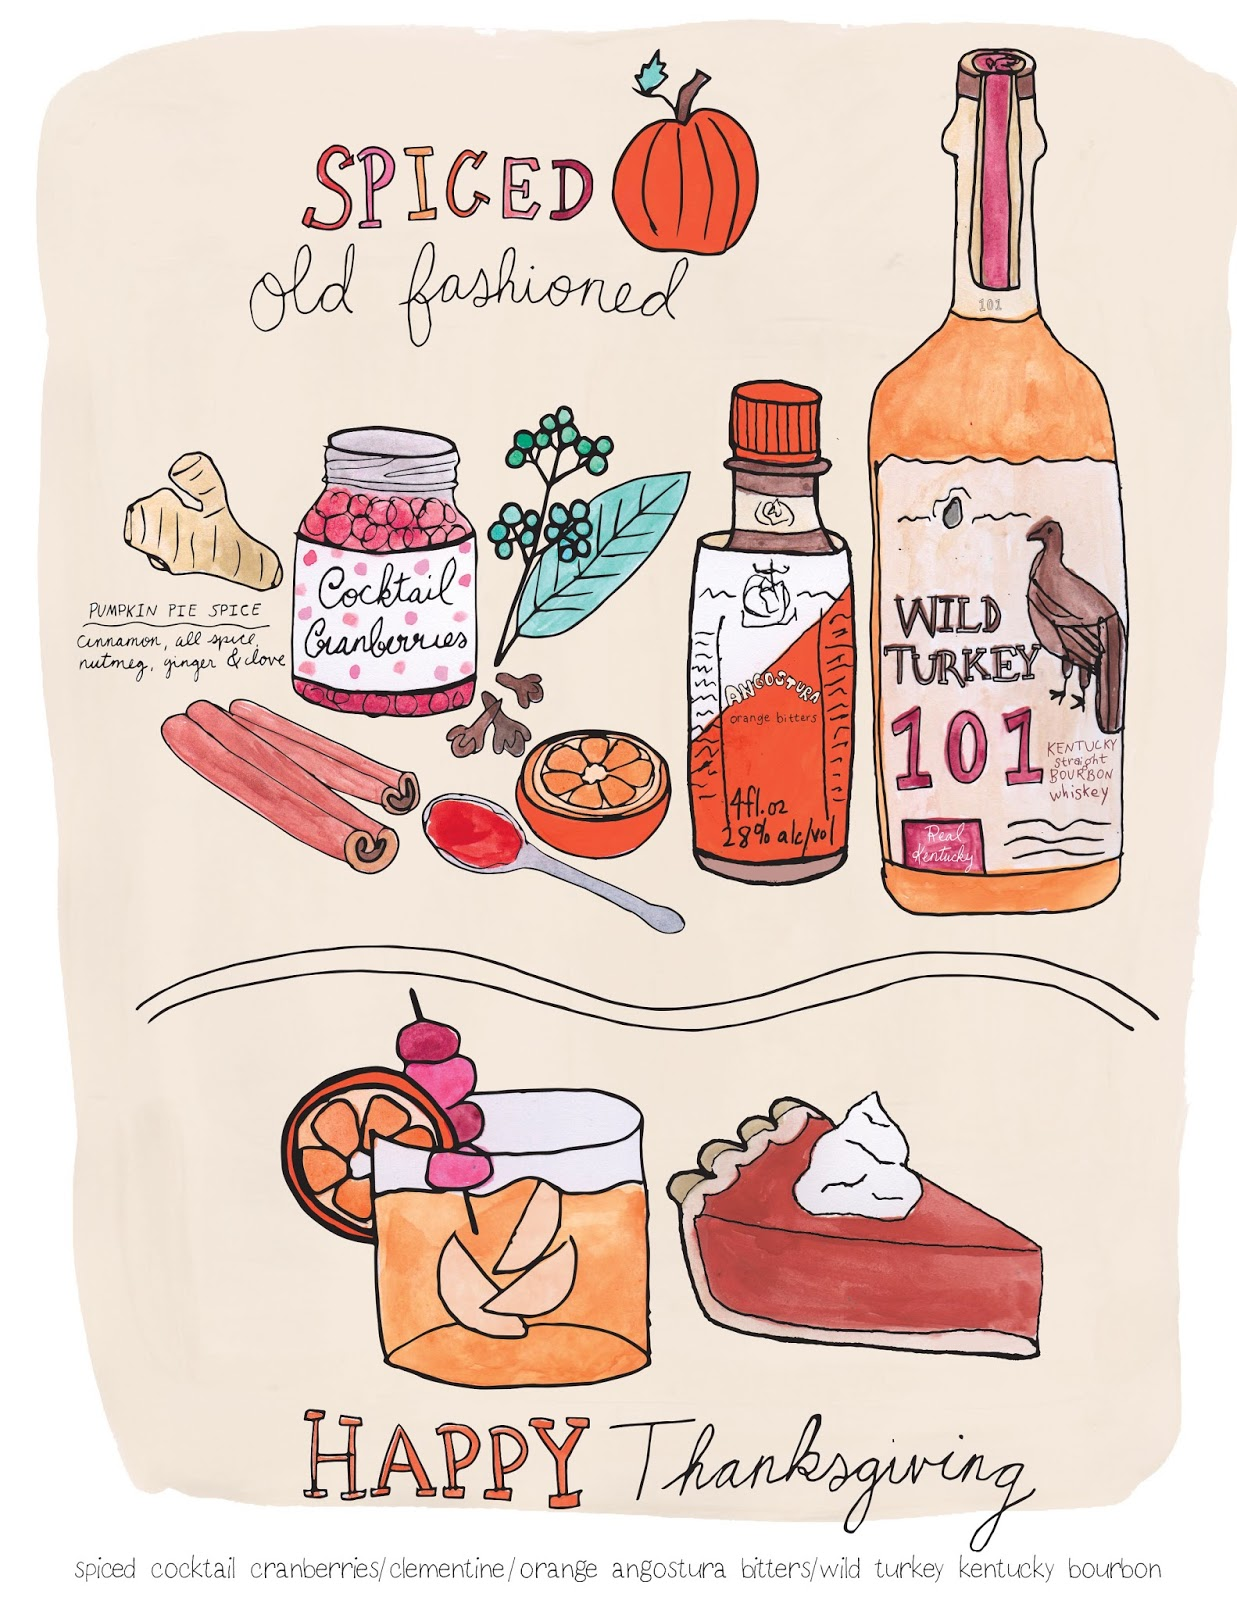 Thanksgiving Spiced Old Fashioned Cocktail Illustration